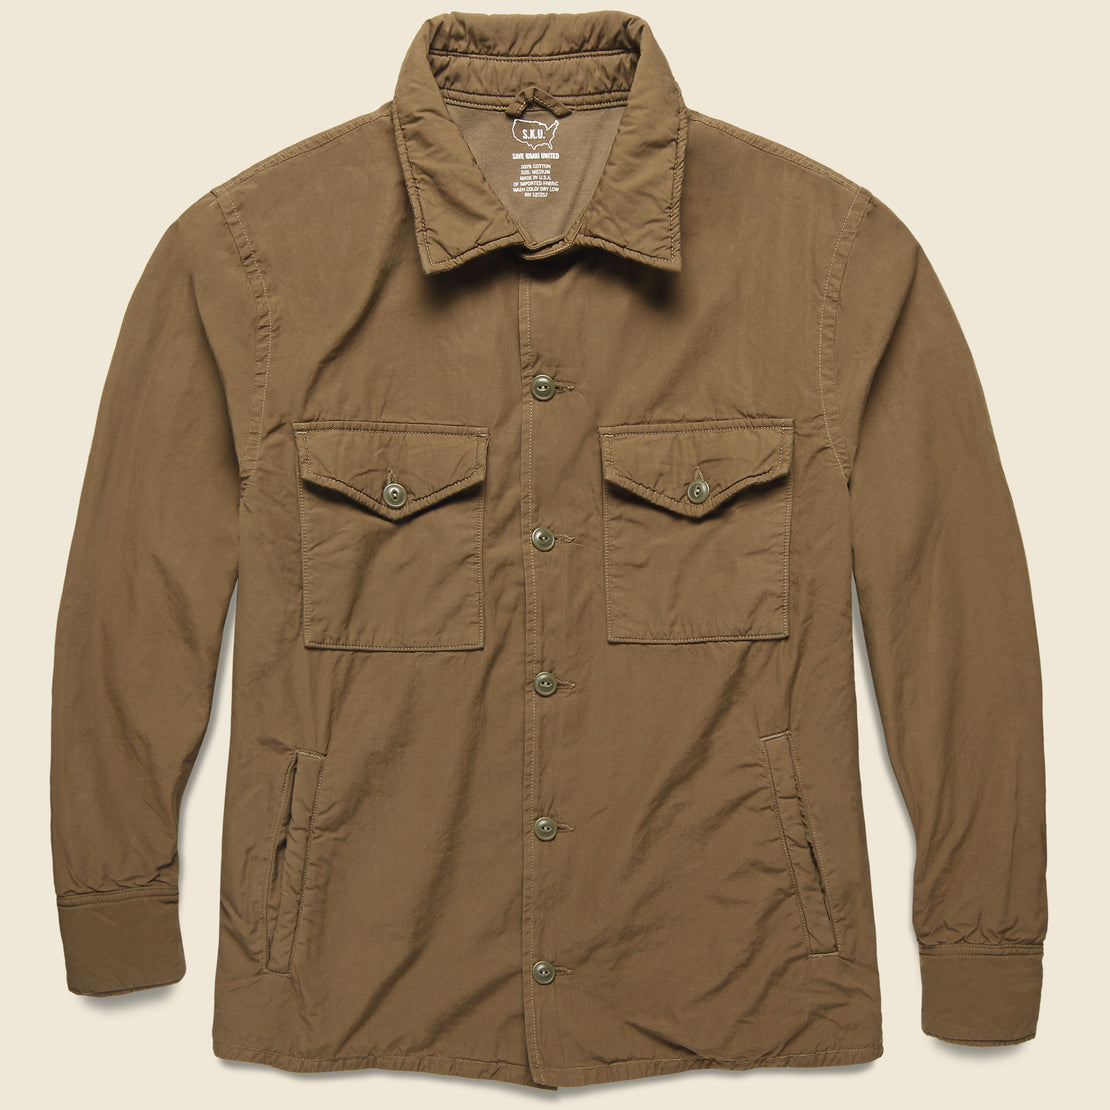 Save Khaki Fleece Lined Shirt Jacket - Barley